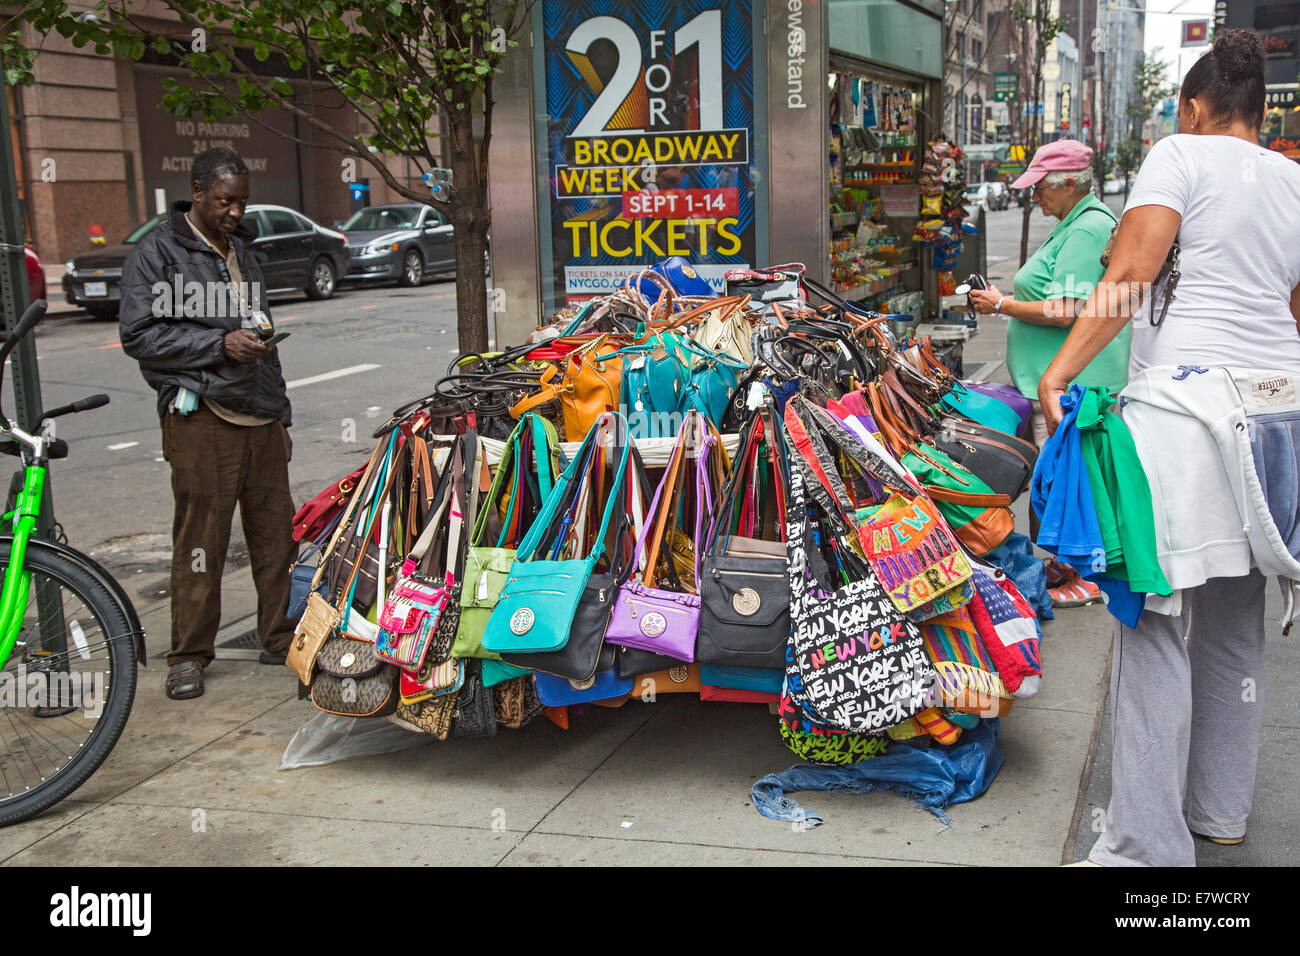 New York New York Handbags On Sale At A Street Vendor S